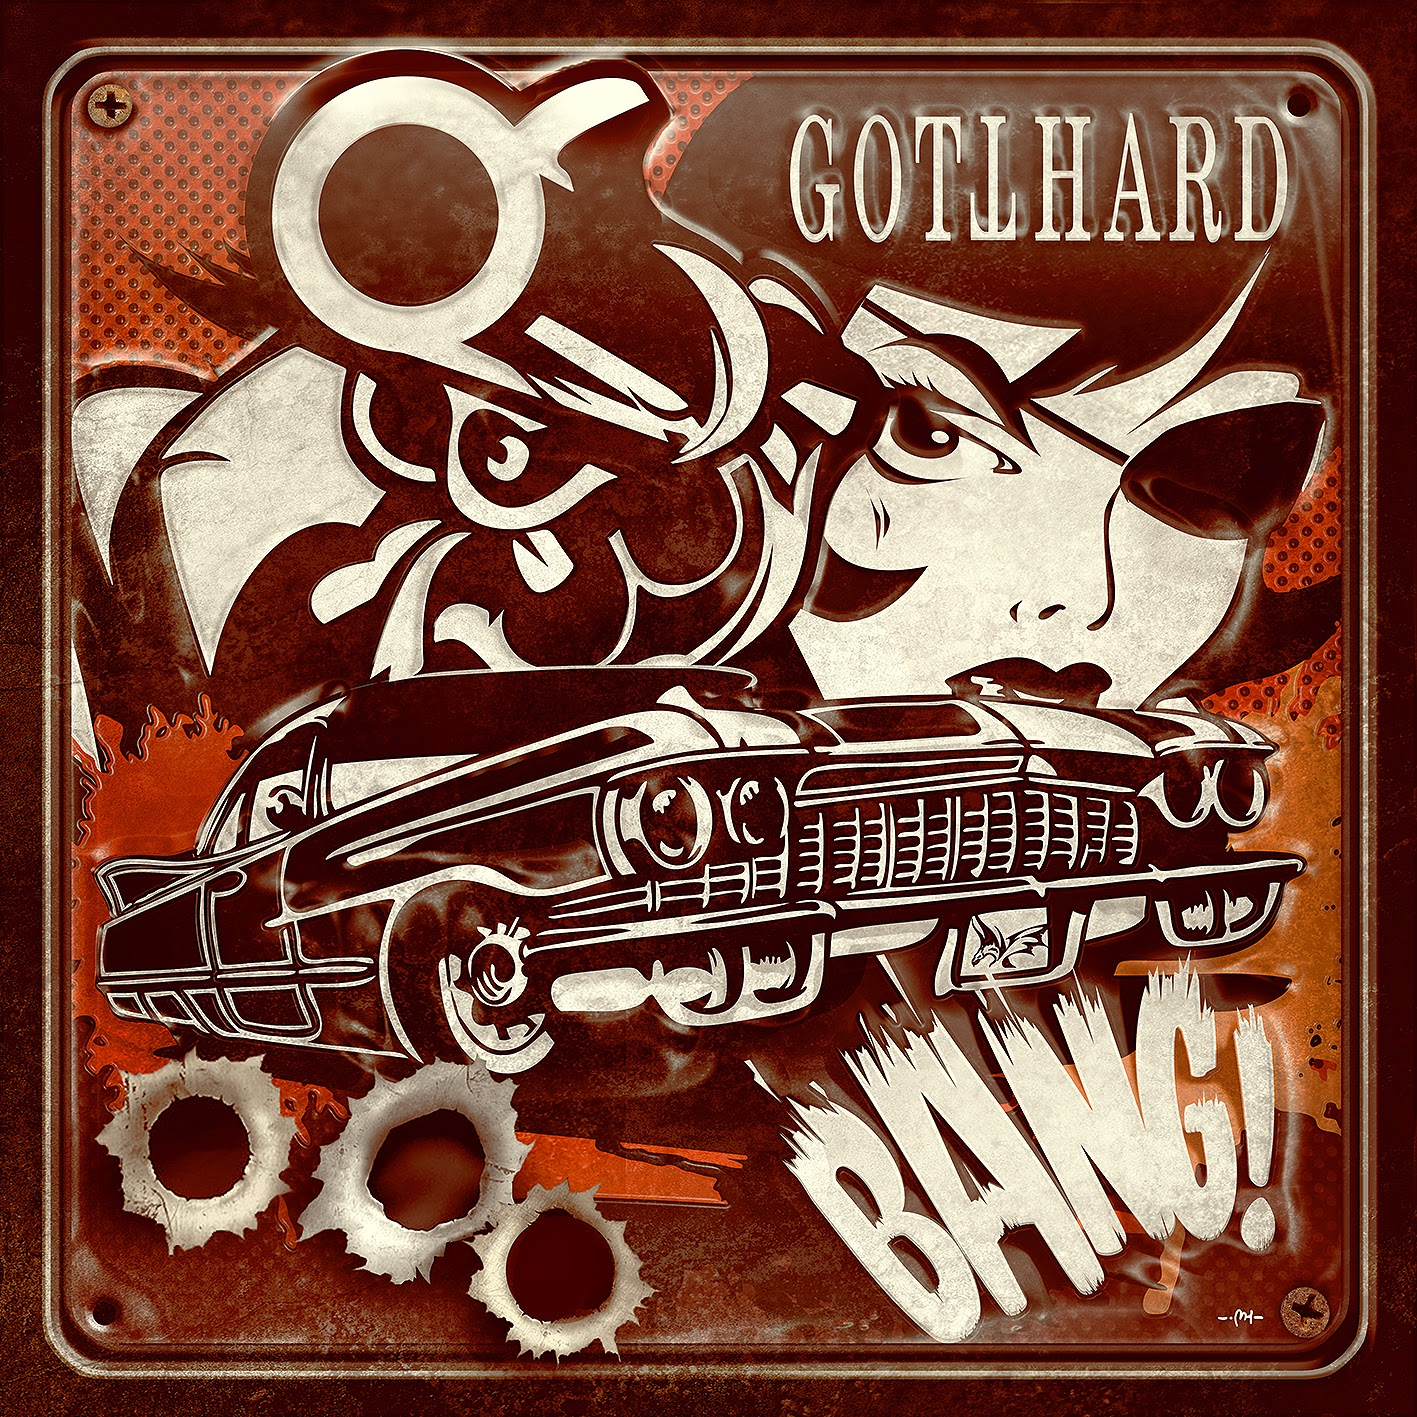 http://rock-and-metal-4-you.blogspot.de/2014/03/cd-review-gotthard-bang.html